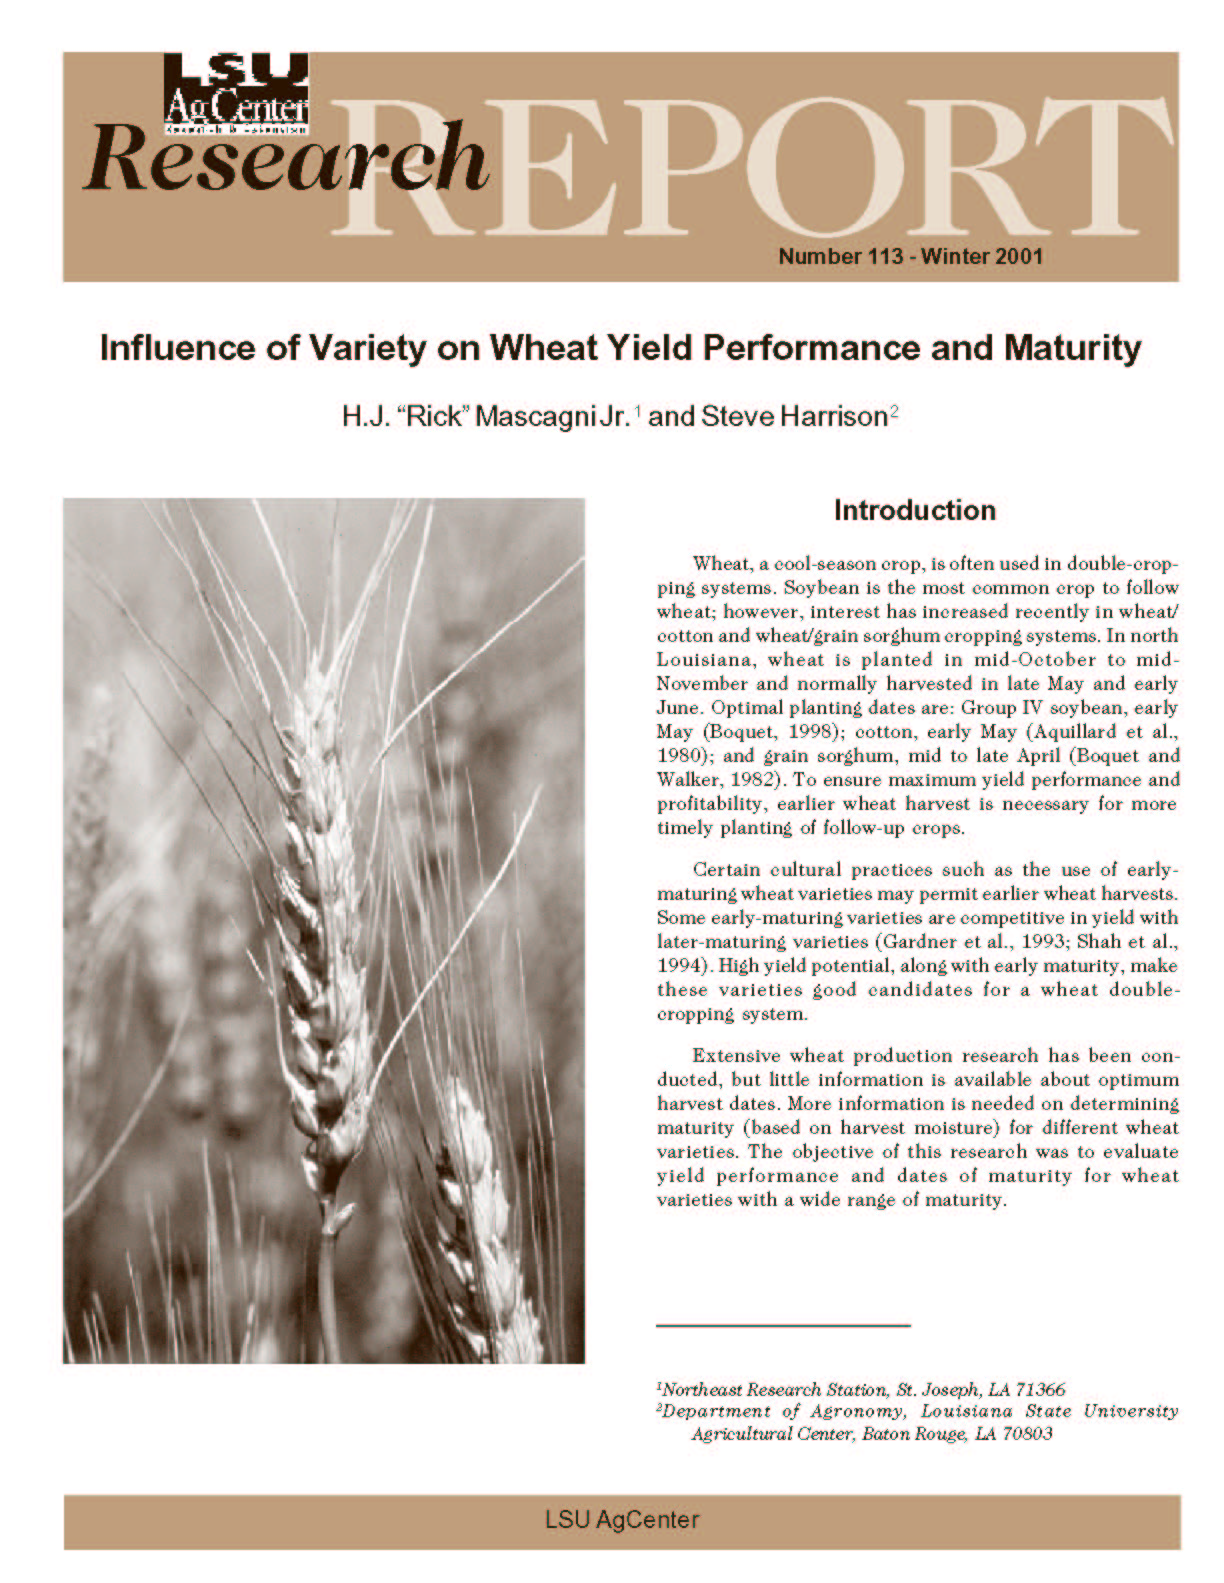 Influence of Variety on Wheat Yield Performance and Maturity (Winter 2001)